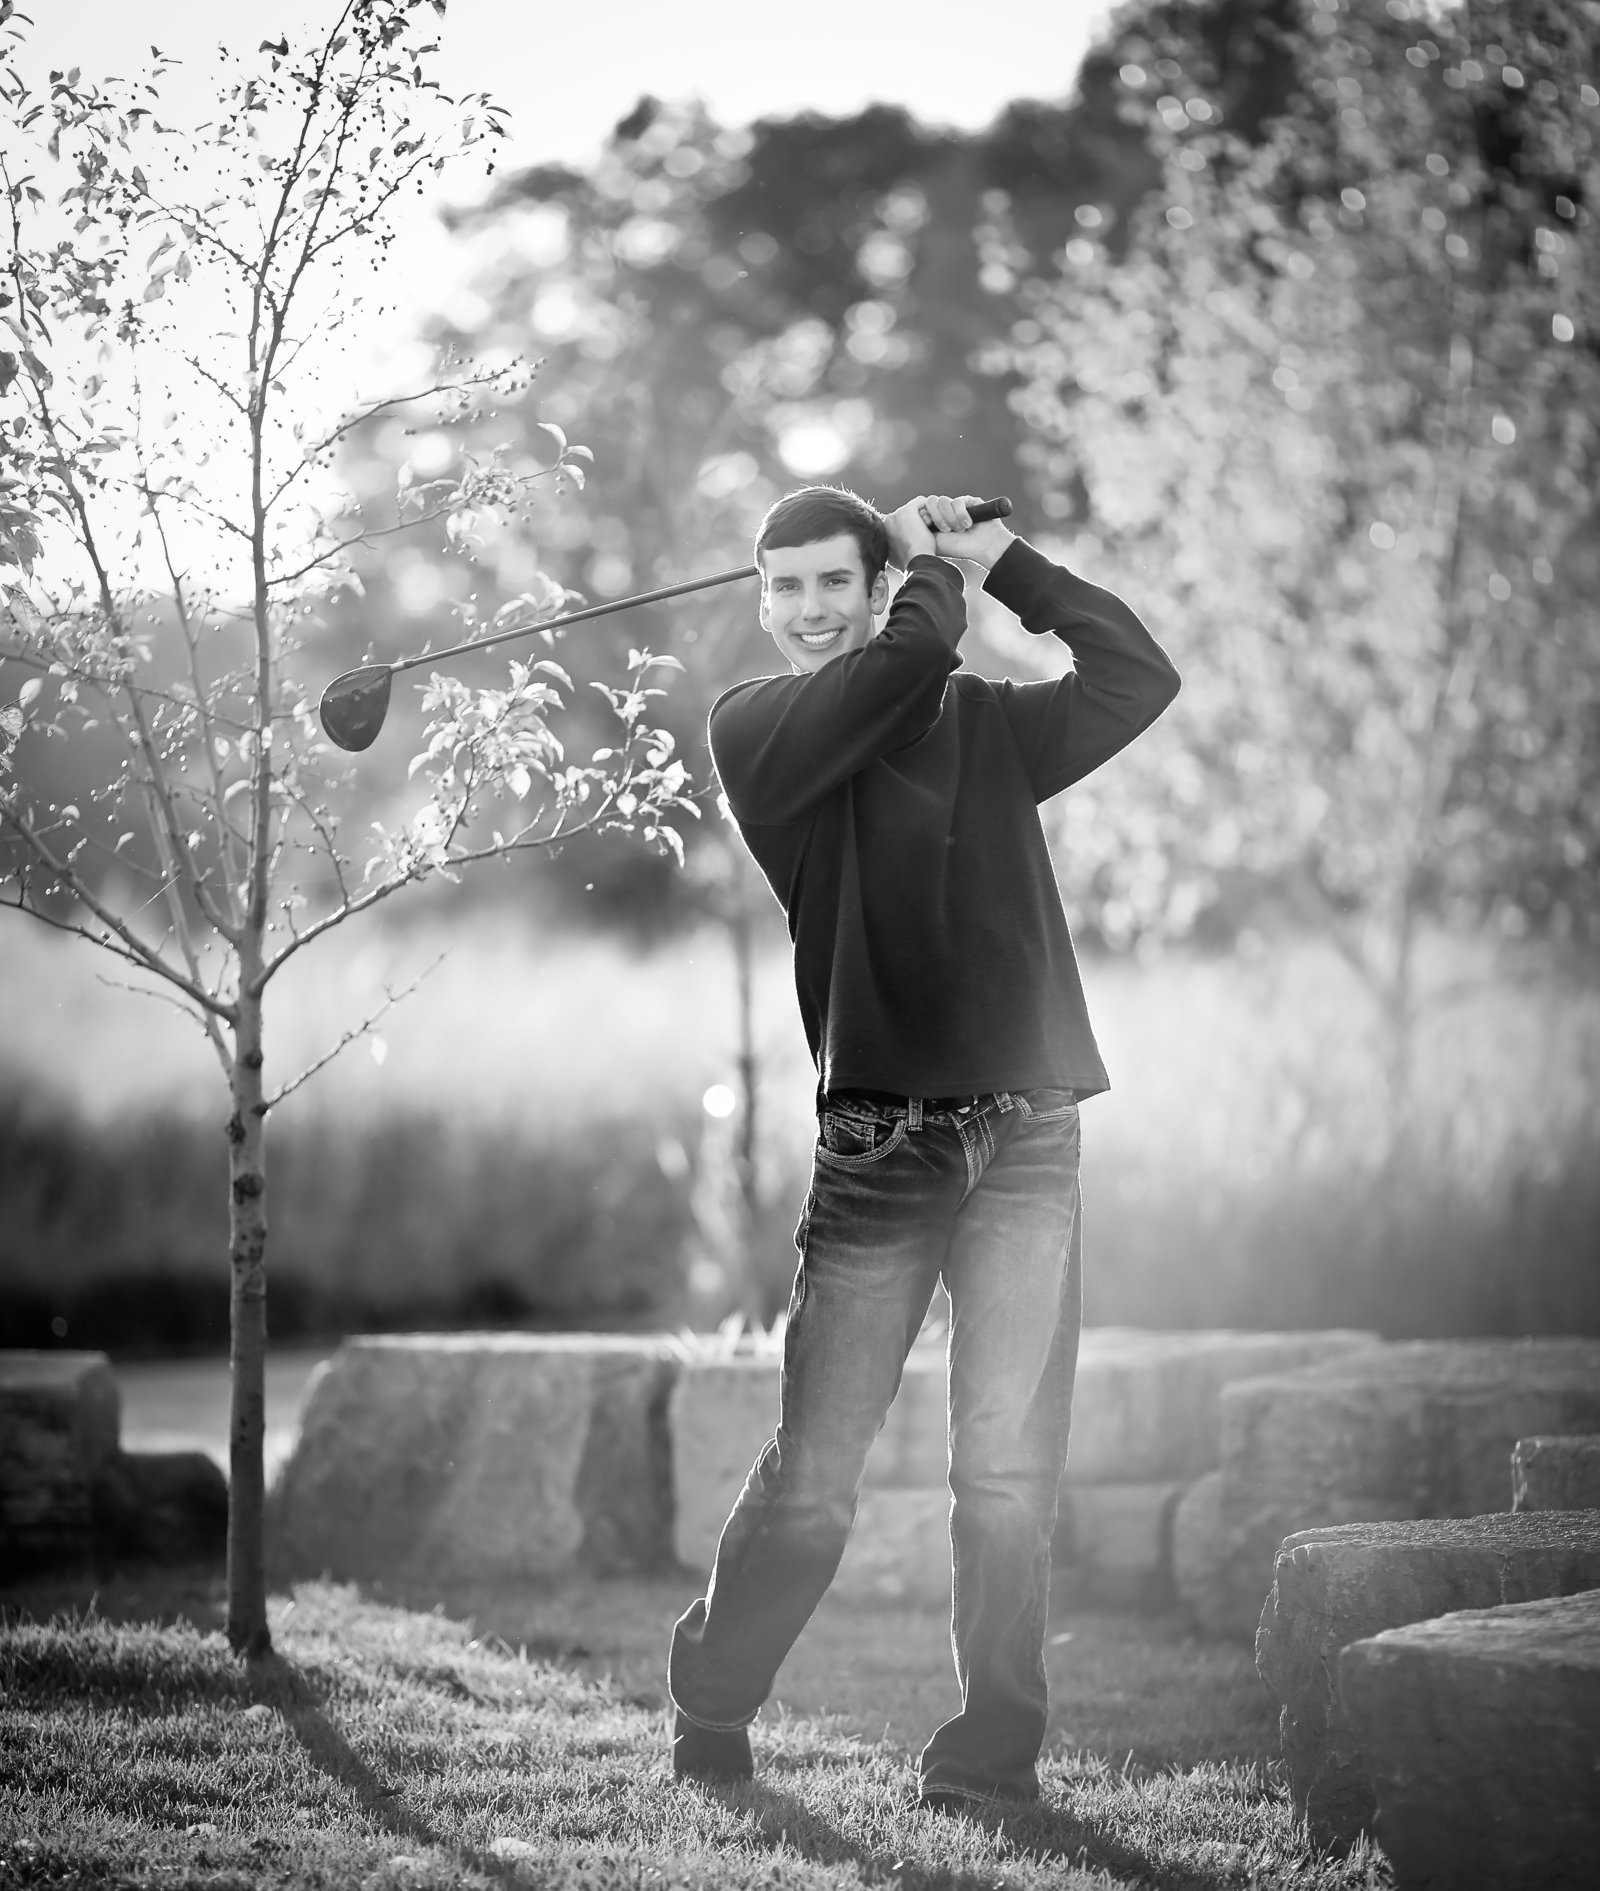 Senior Portraits of boy playing golf , Photographer in Senior Portrait Photographer in Savannah, GA